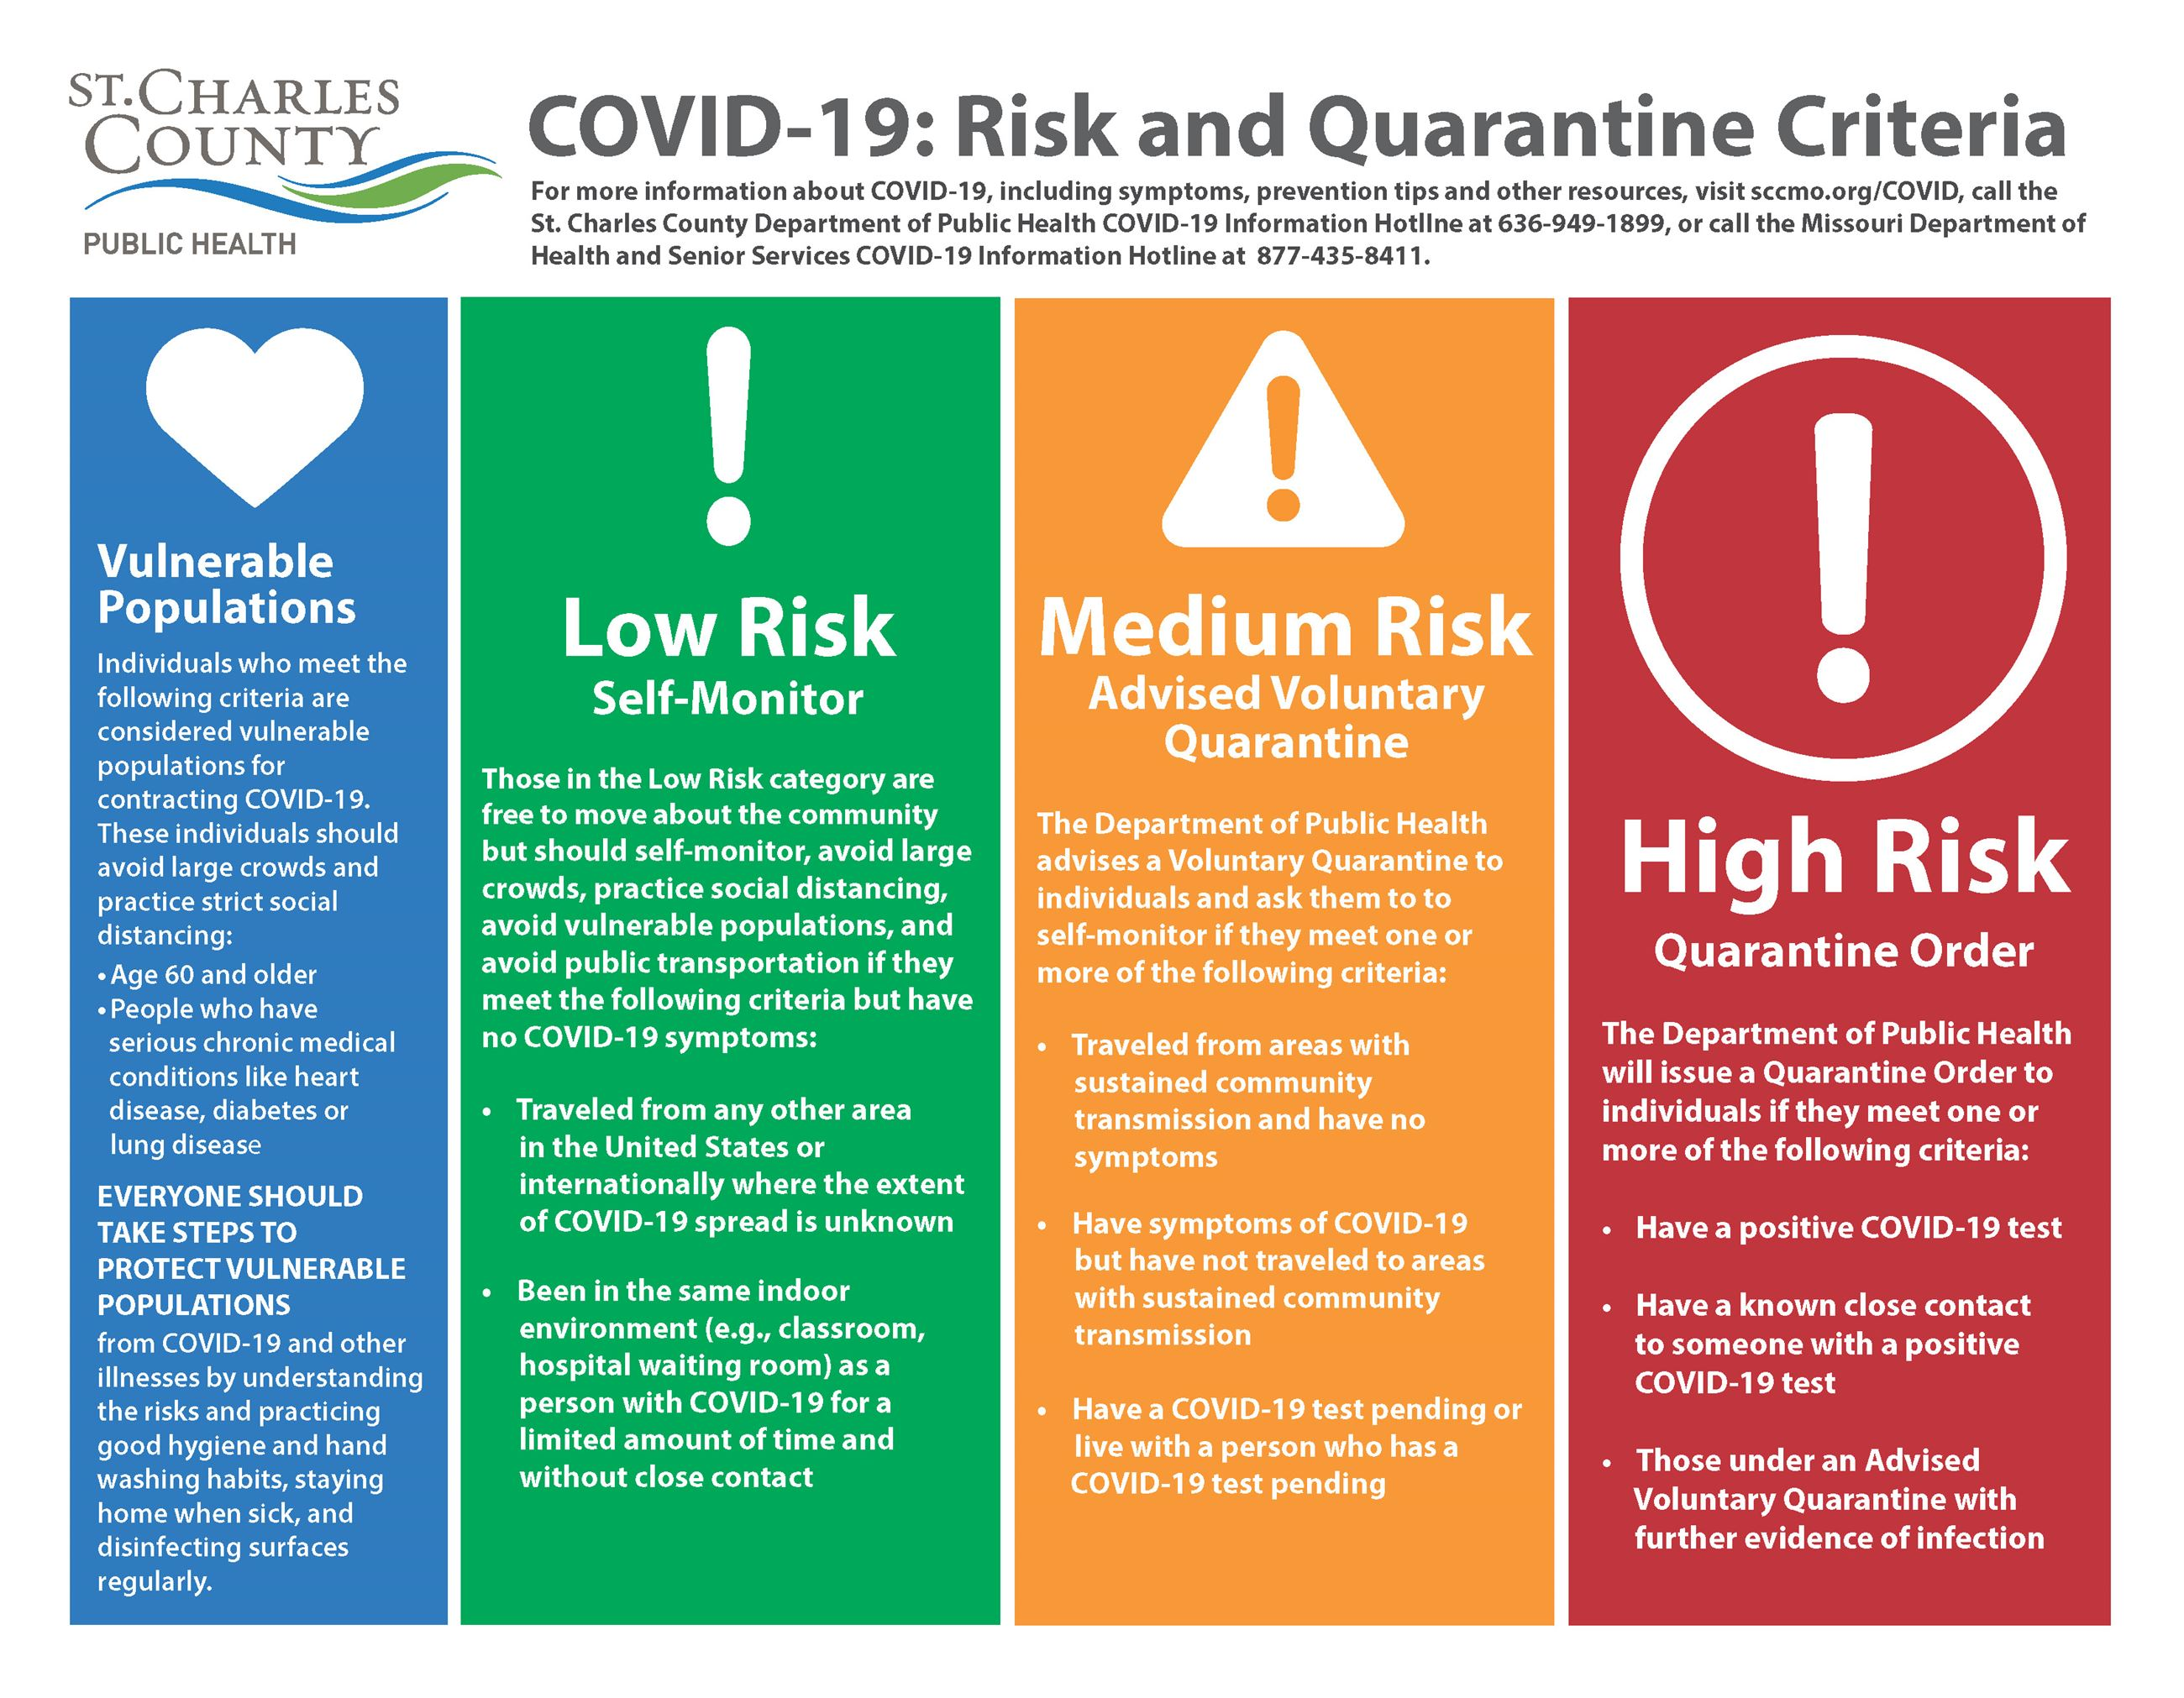 COVID19 Risk And Quarantine Criteria Flyer Final 3.13.20 (PDF)